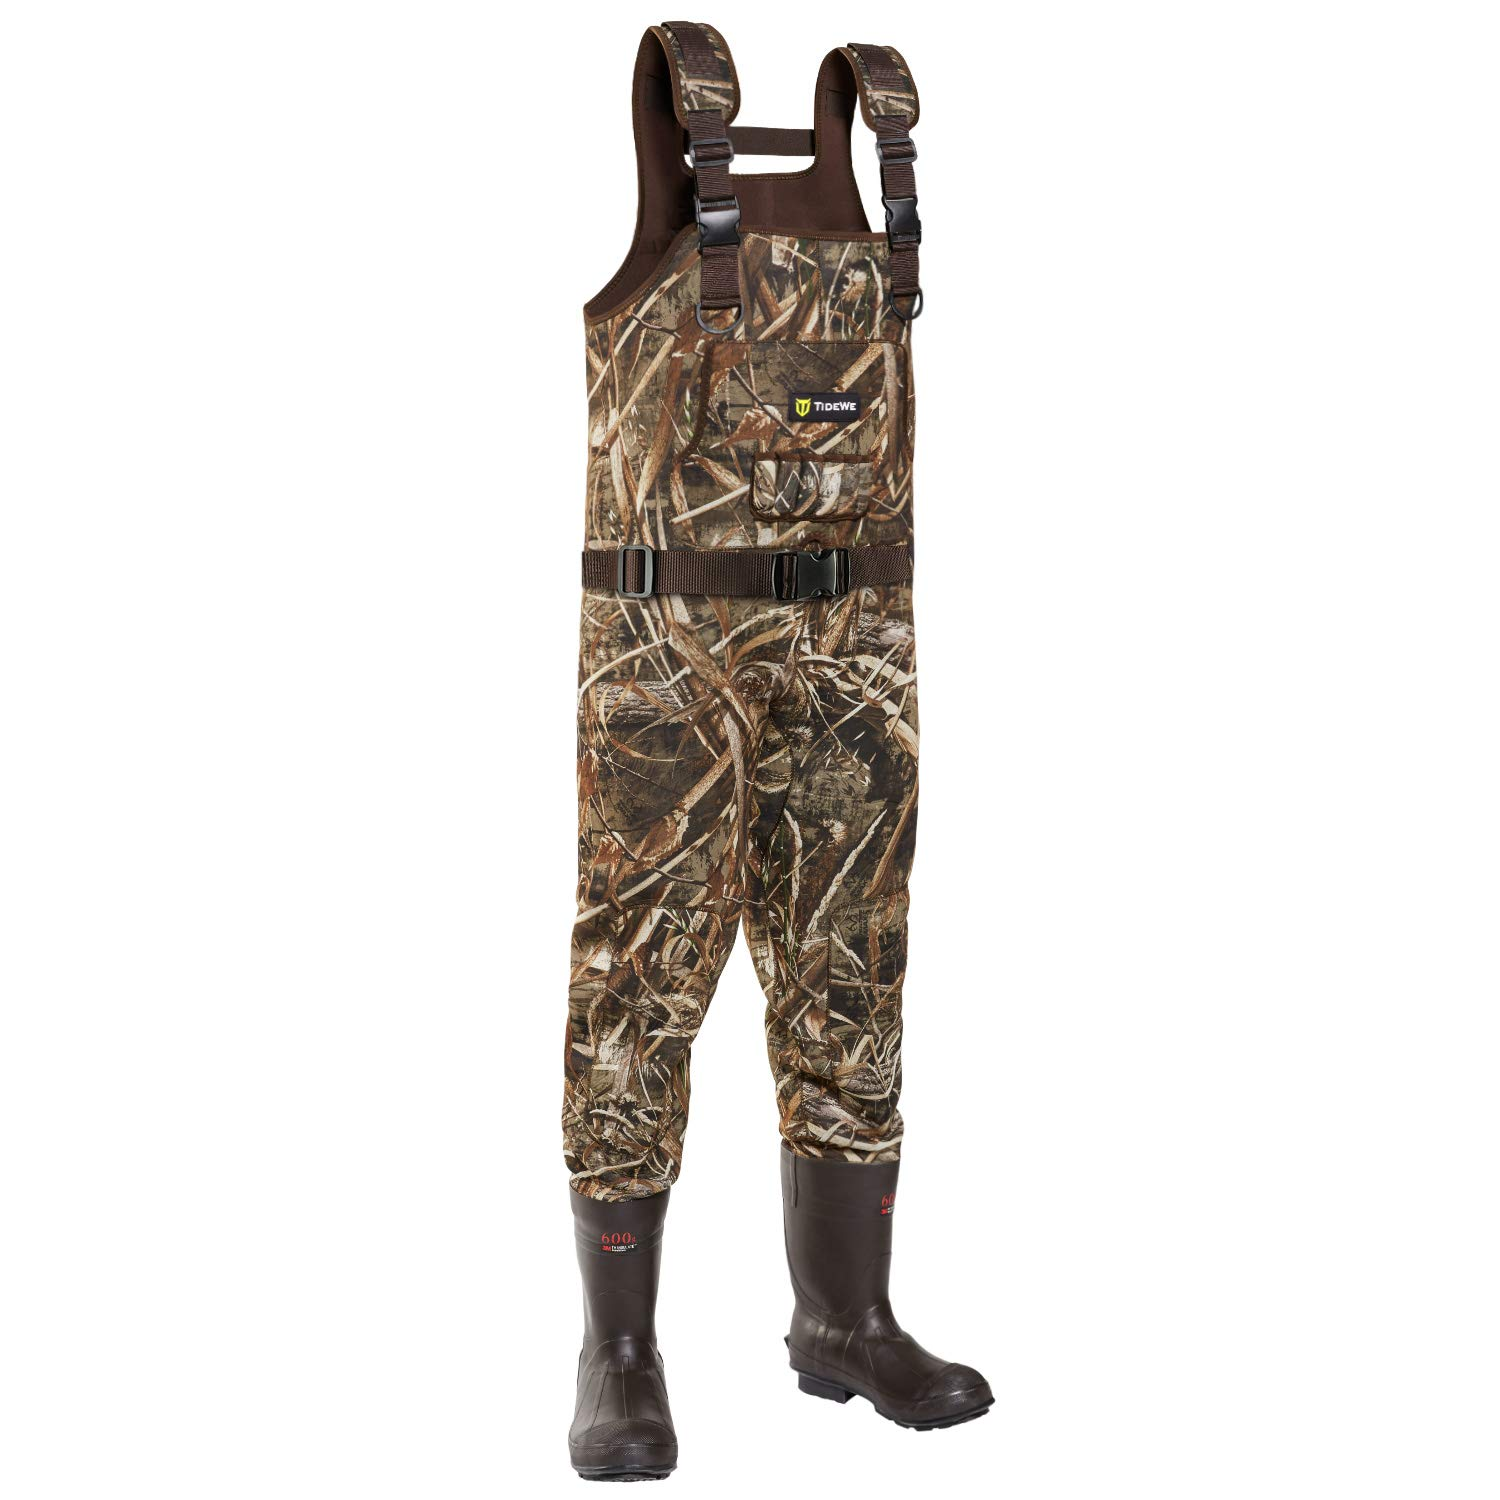 TideWe Chest Wader, Camo Hunting Wader for Men, Waterproof Cleated Neoprene Bootfoot Wader, Insulated Hunting Fishing Wader Realtree MAX5 Camo 600G 800G Insulation